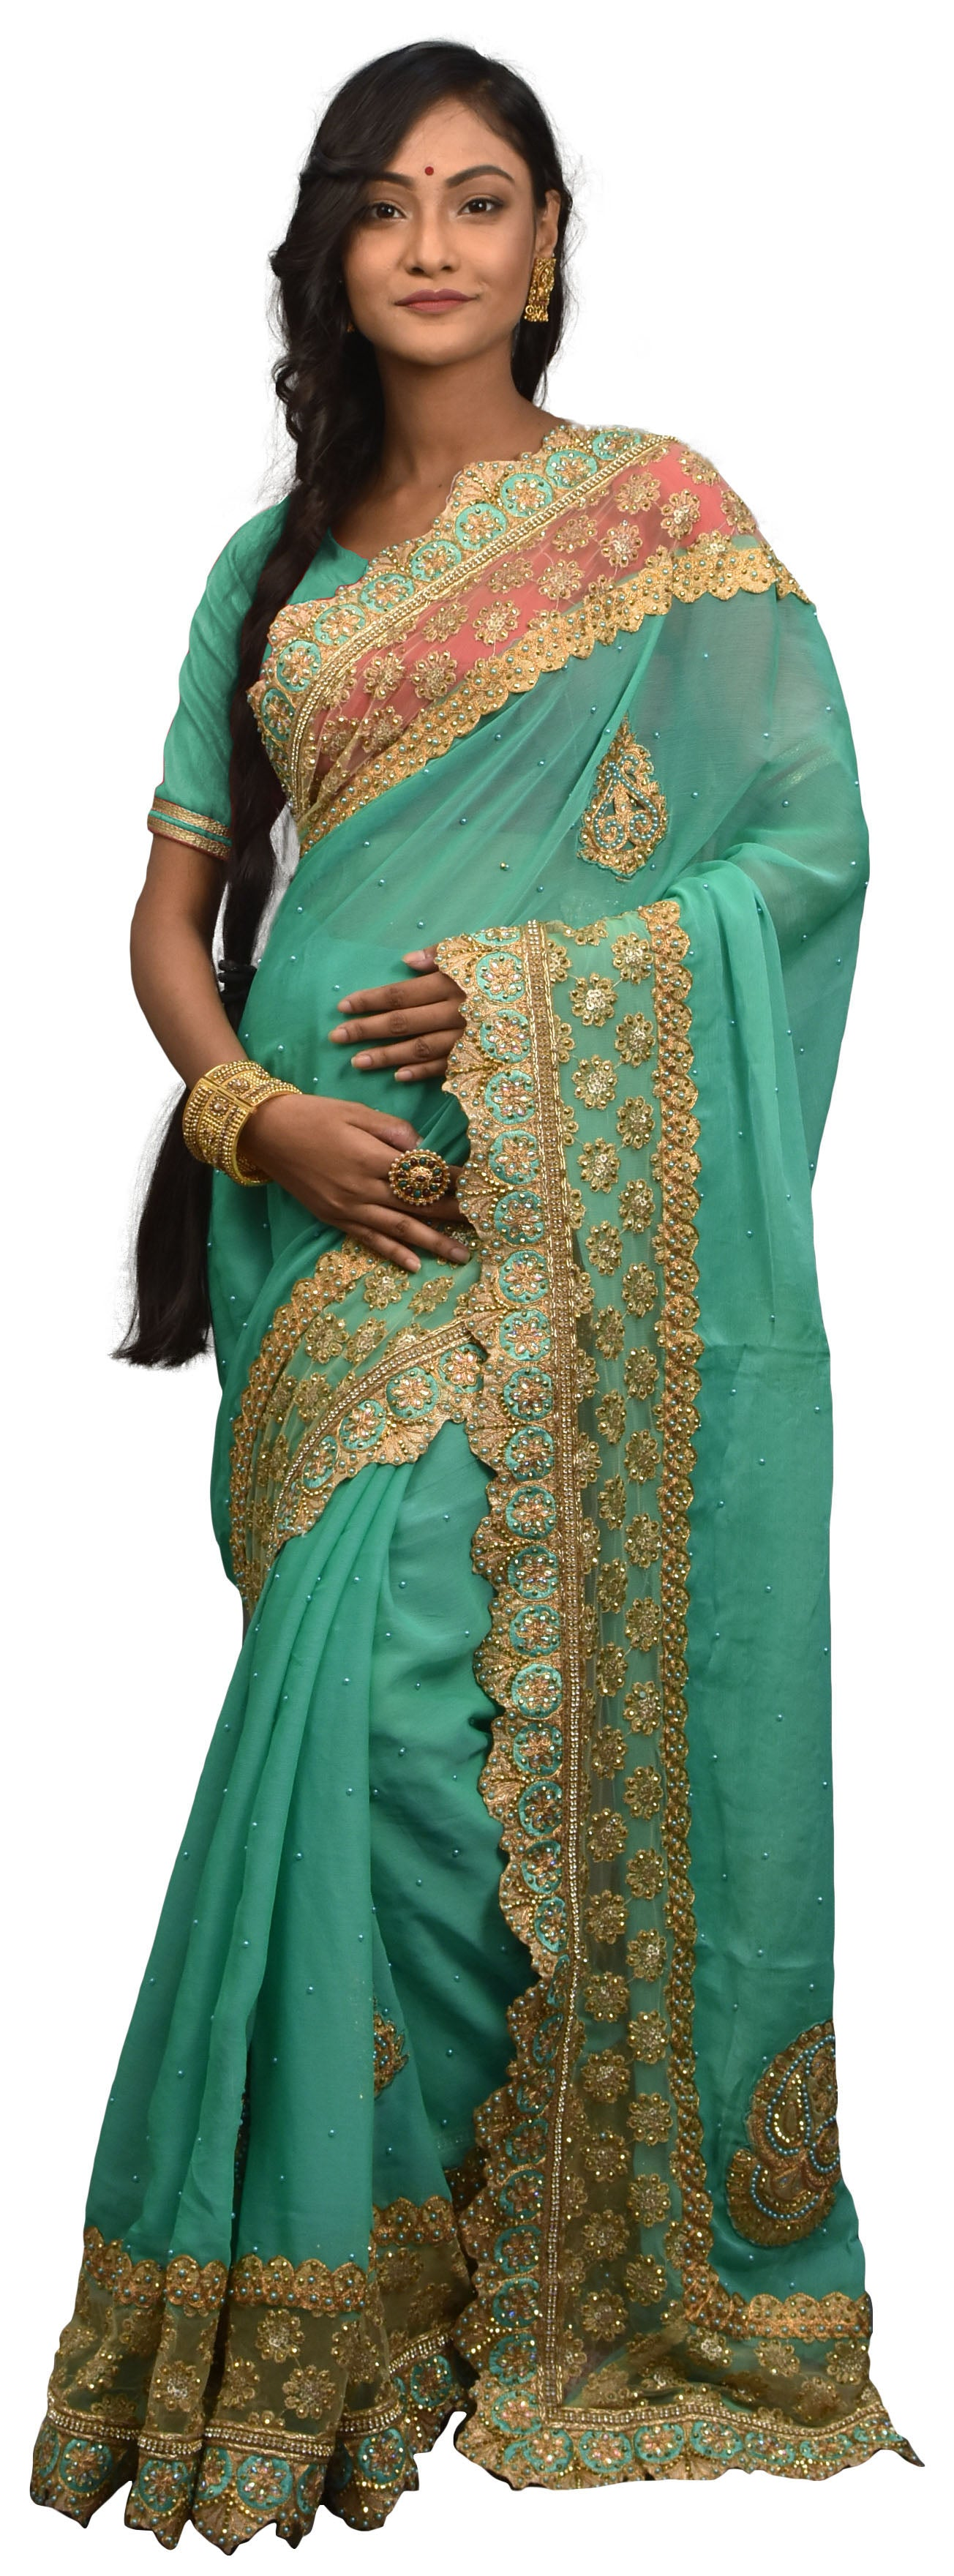 SMSAREE Turquoise Designer Wedding Partywear Georgette Stone Thread Sequence & Pearl Hand Embroidery Work Bridal Saree Sari With Blouse Piece E529